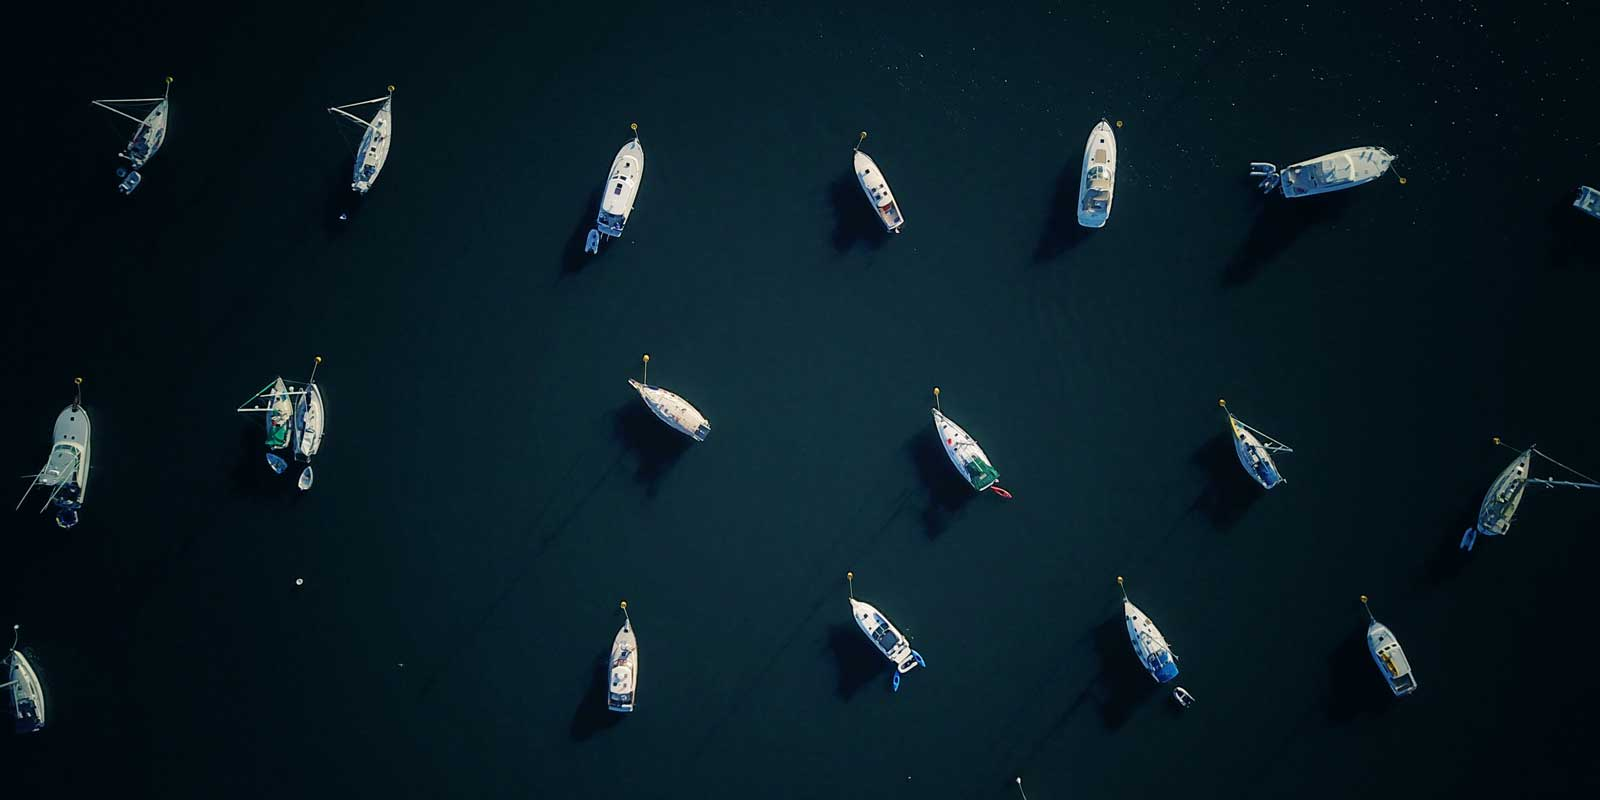 Aerial view of boats in a bay